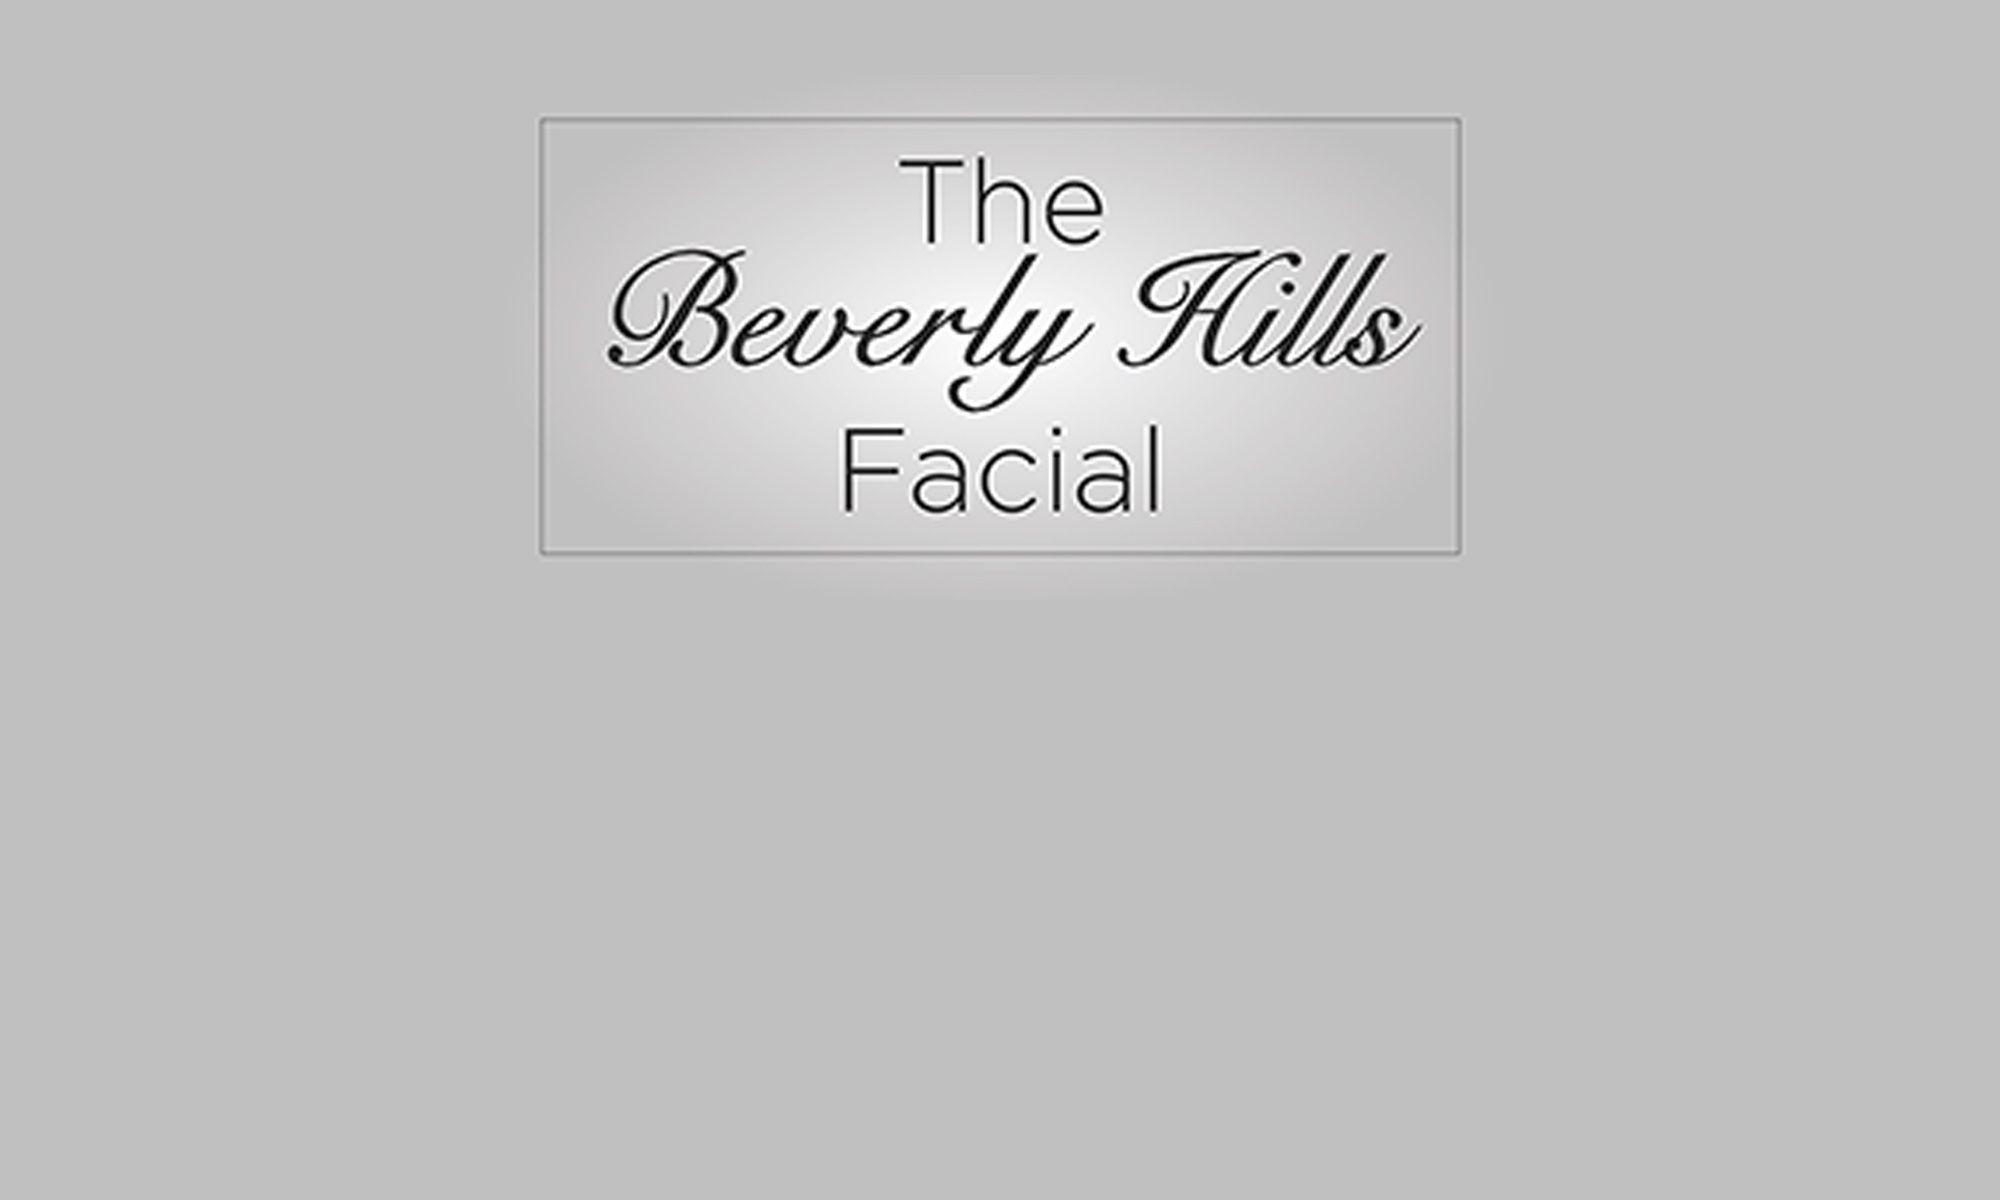 The Beverly Hills Facial